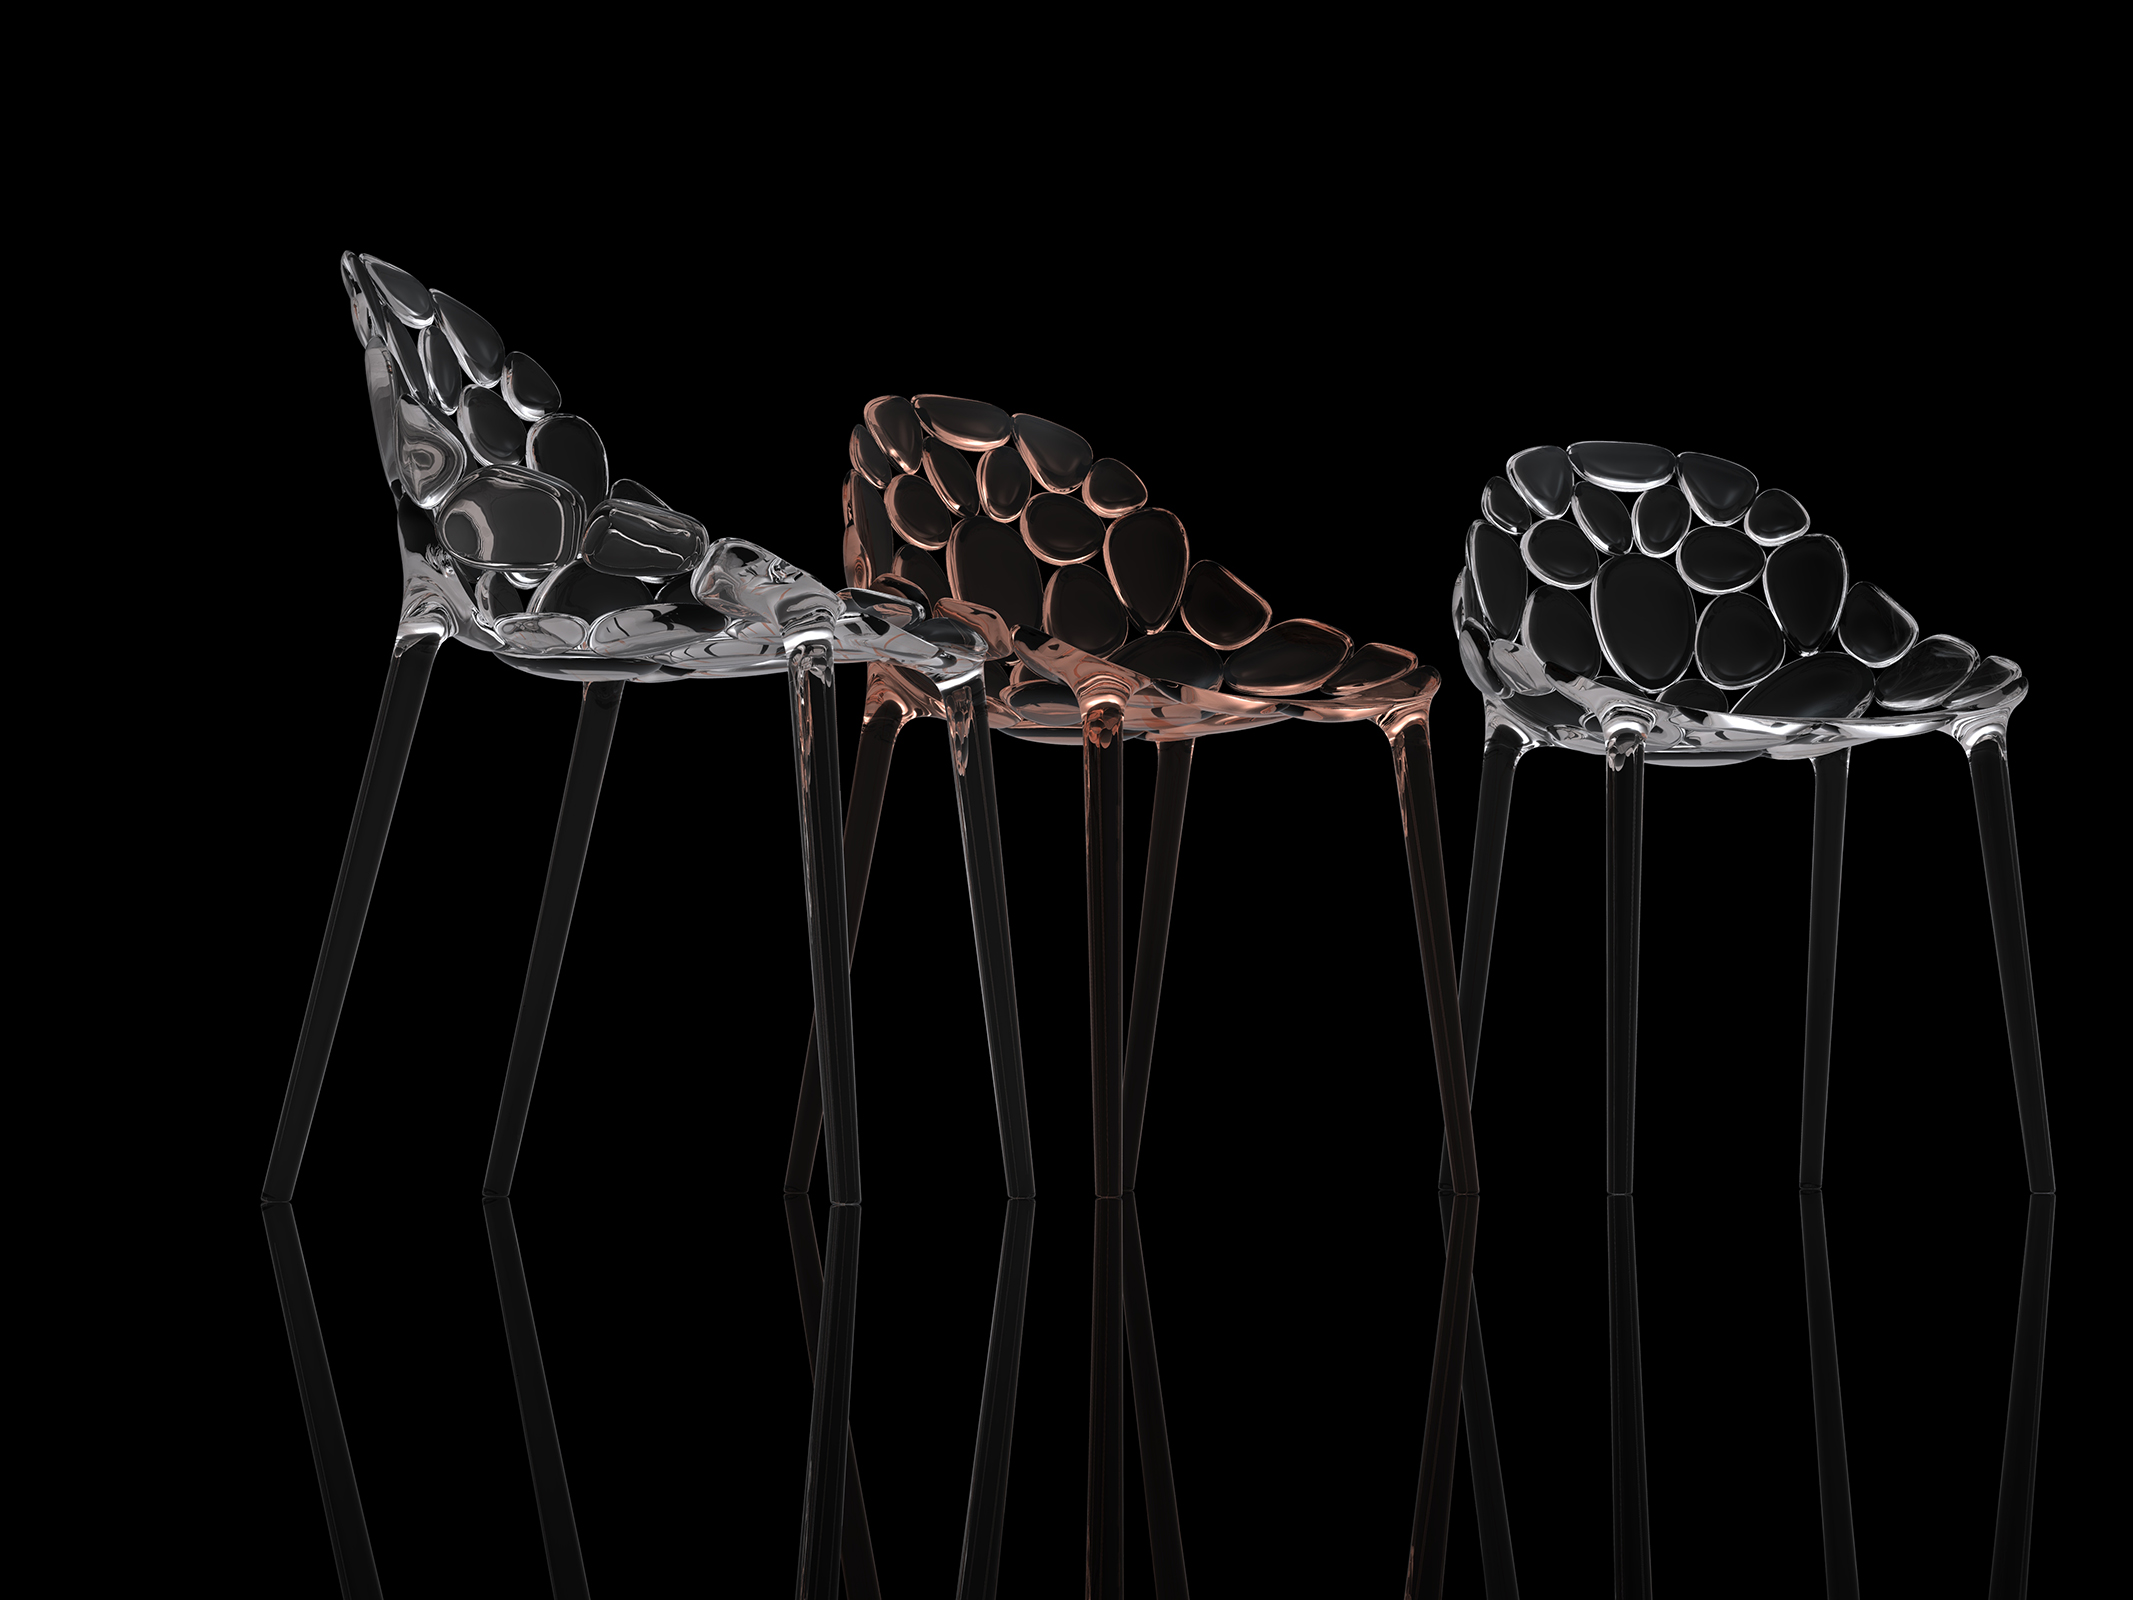 Claud-io chair by eugeni Quitllet with Kartell 7